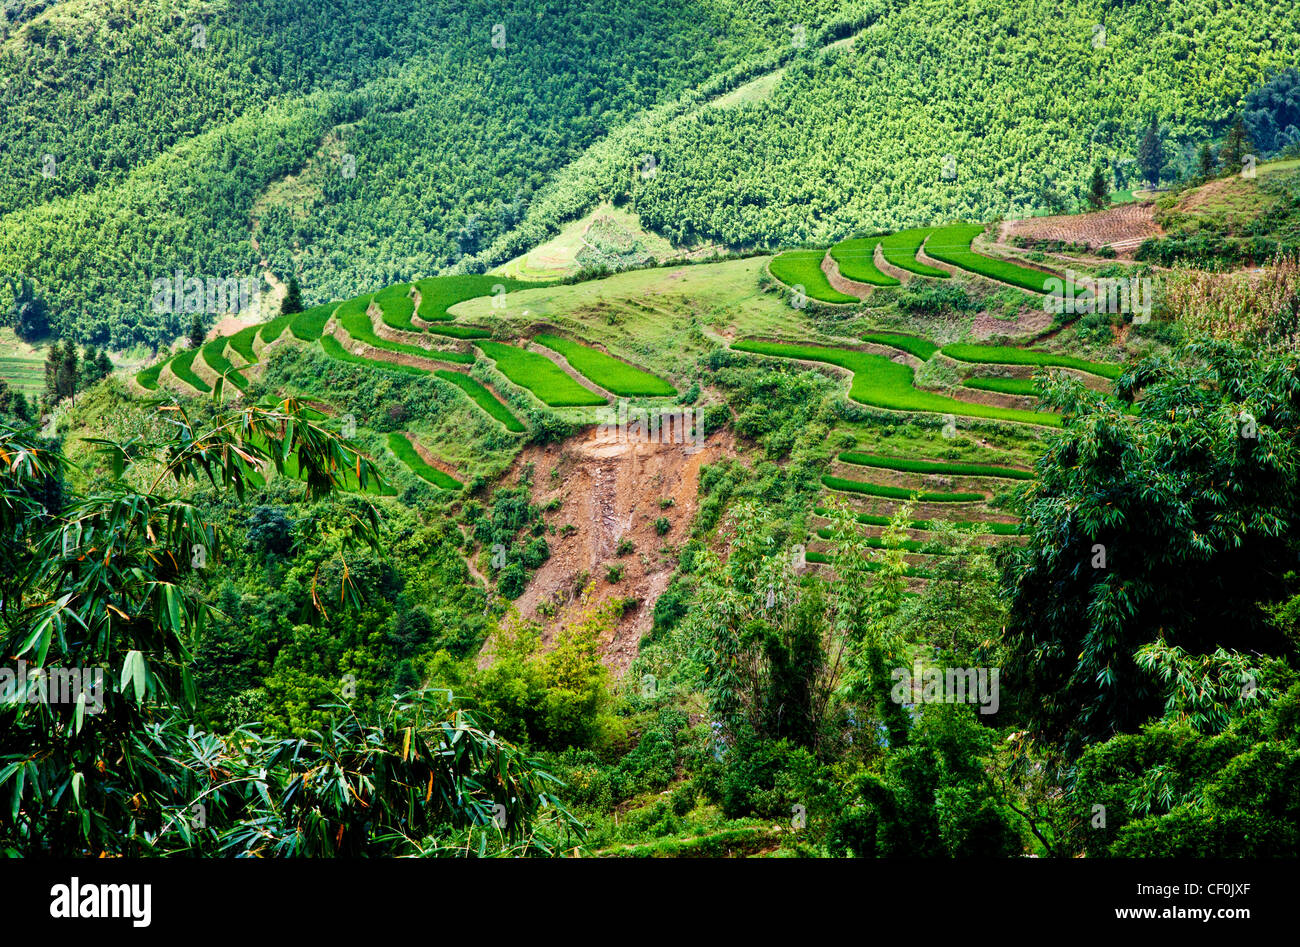 Rice terraces being farmed on th side of a hill near Sapa, Vietnam - Stock Image